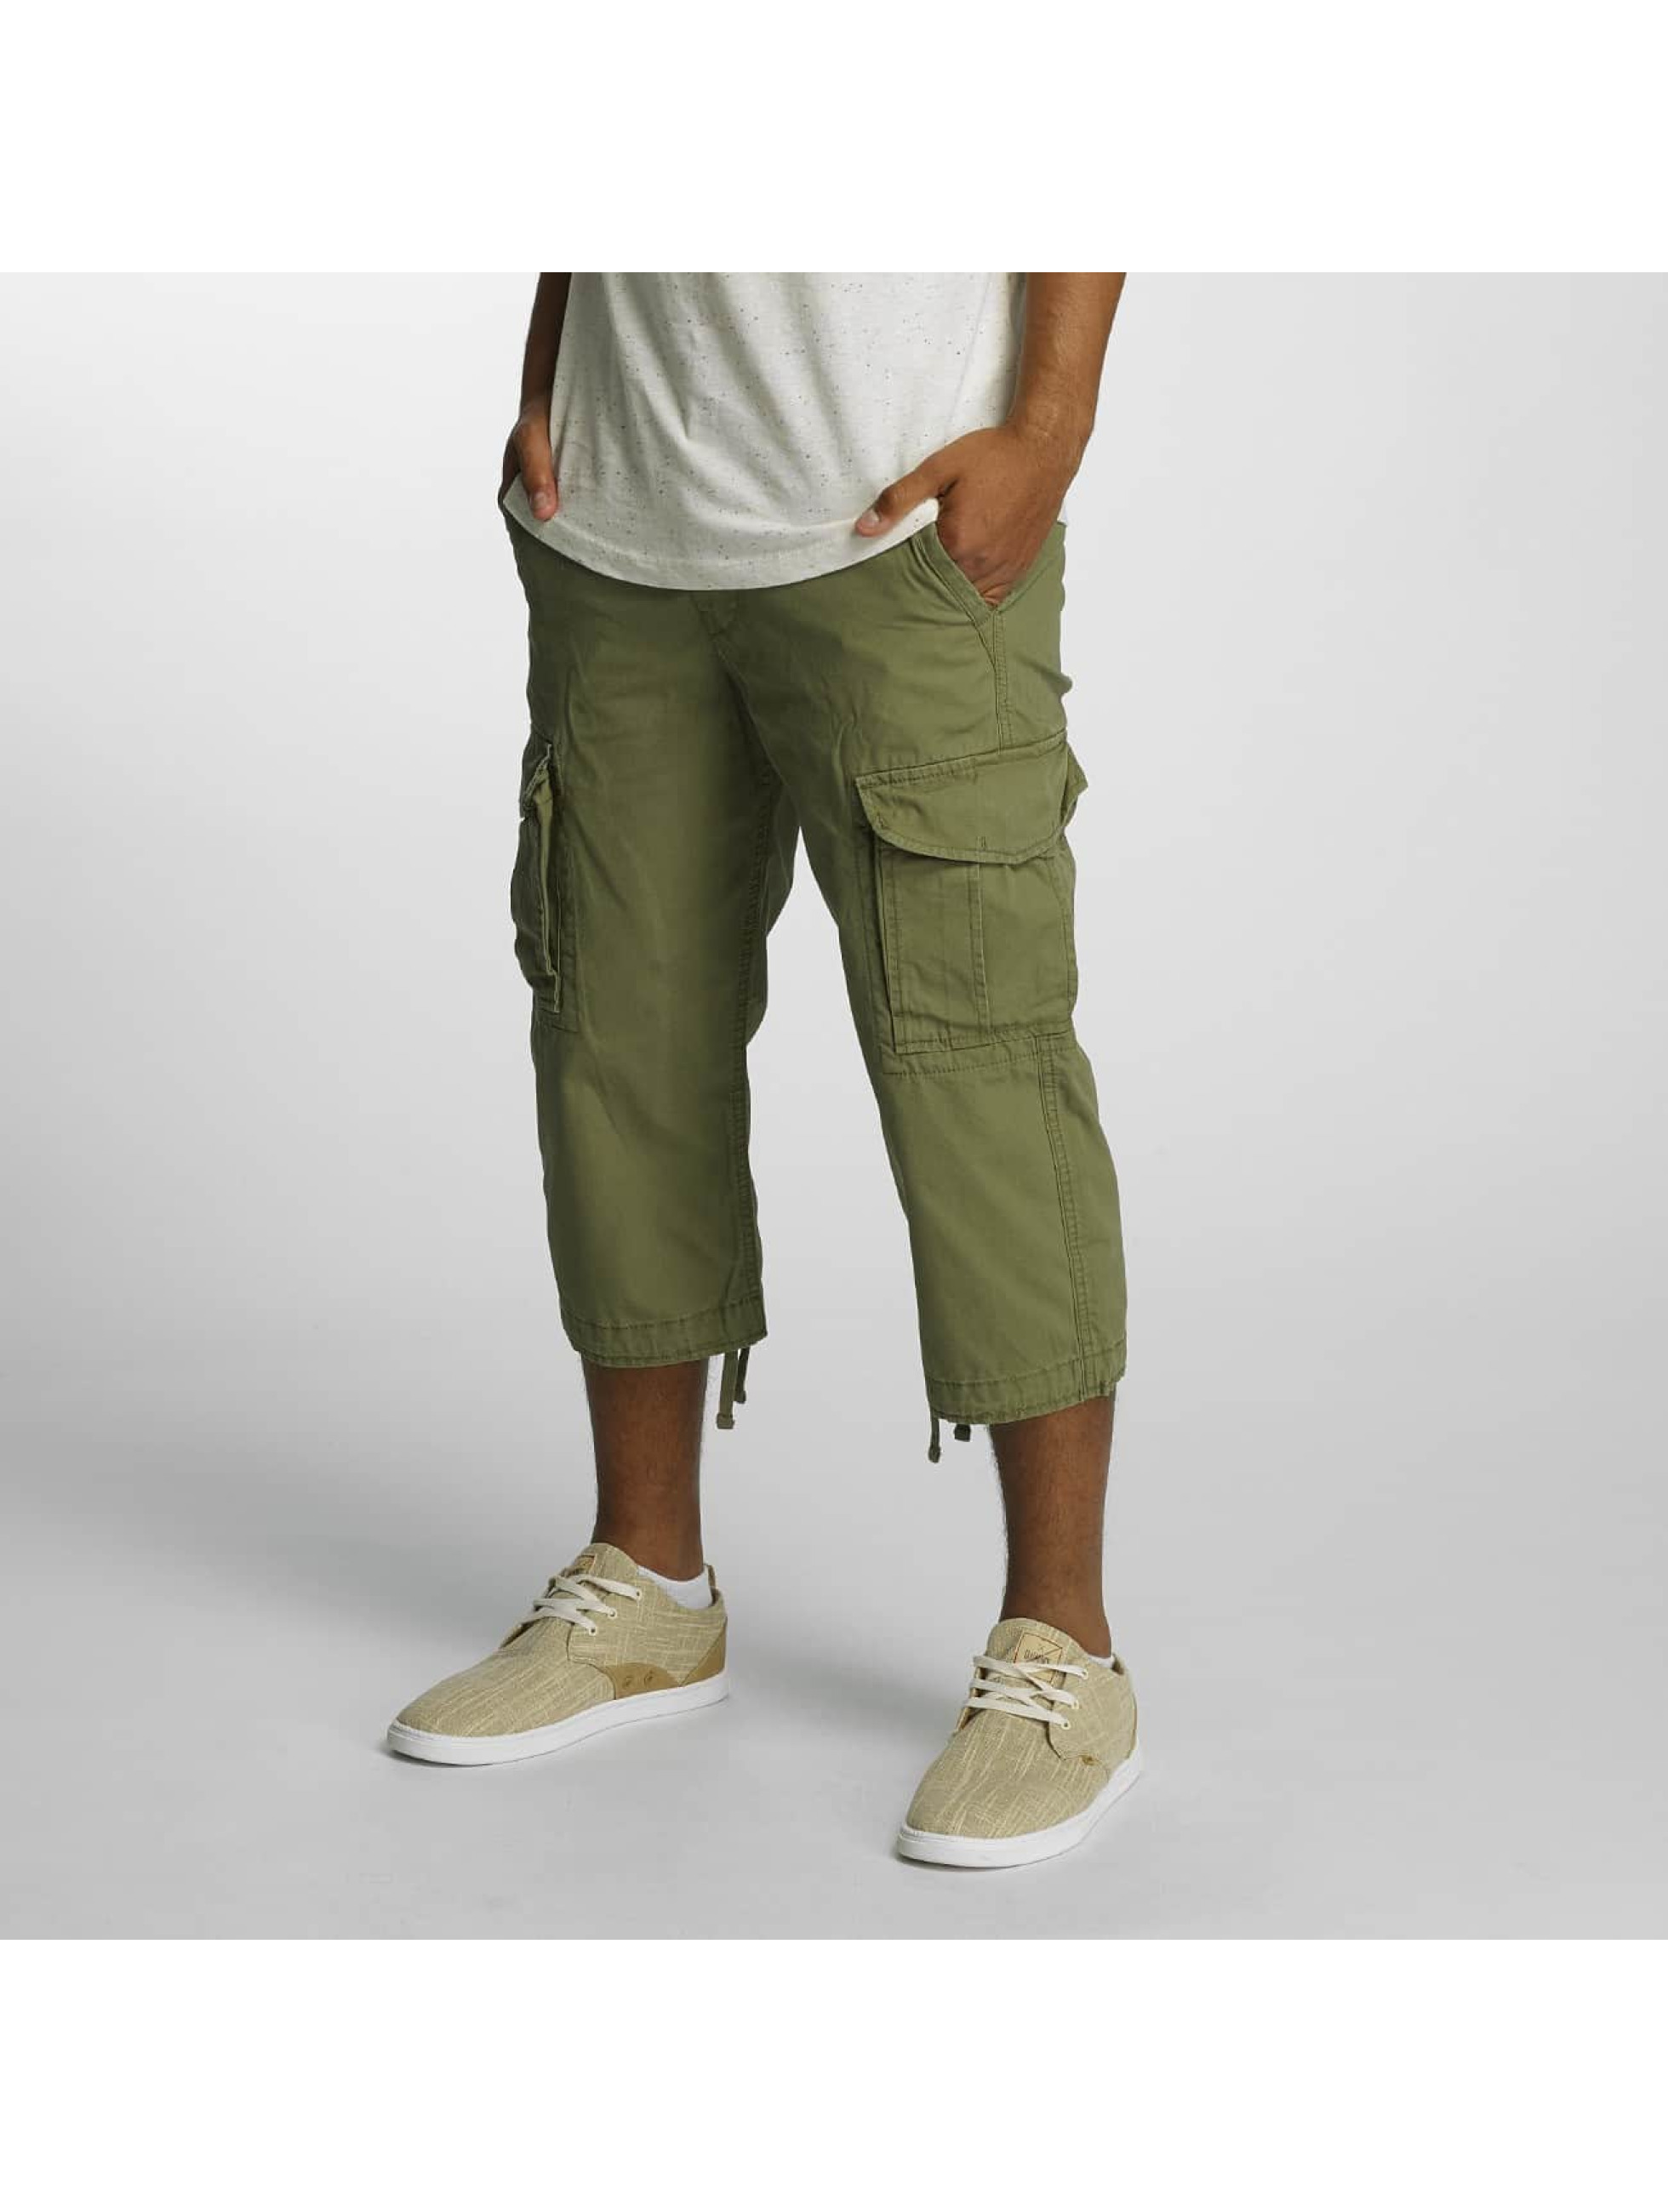 Jack & Jones Short jjiPreston olive